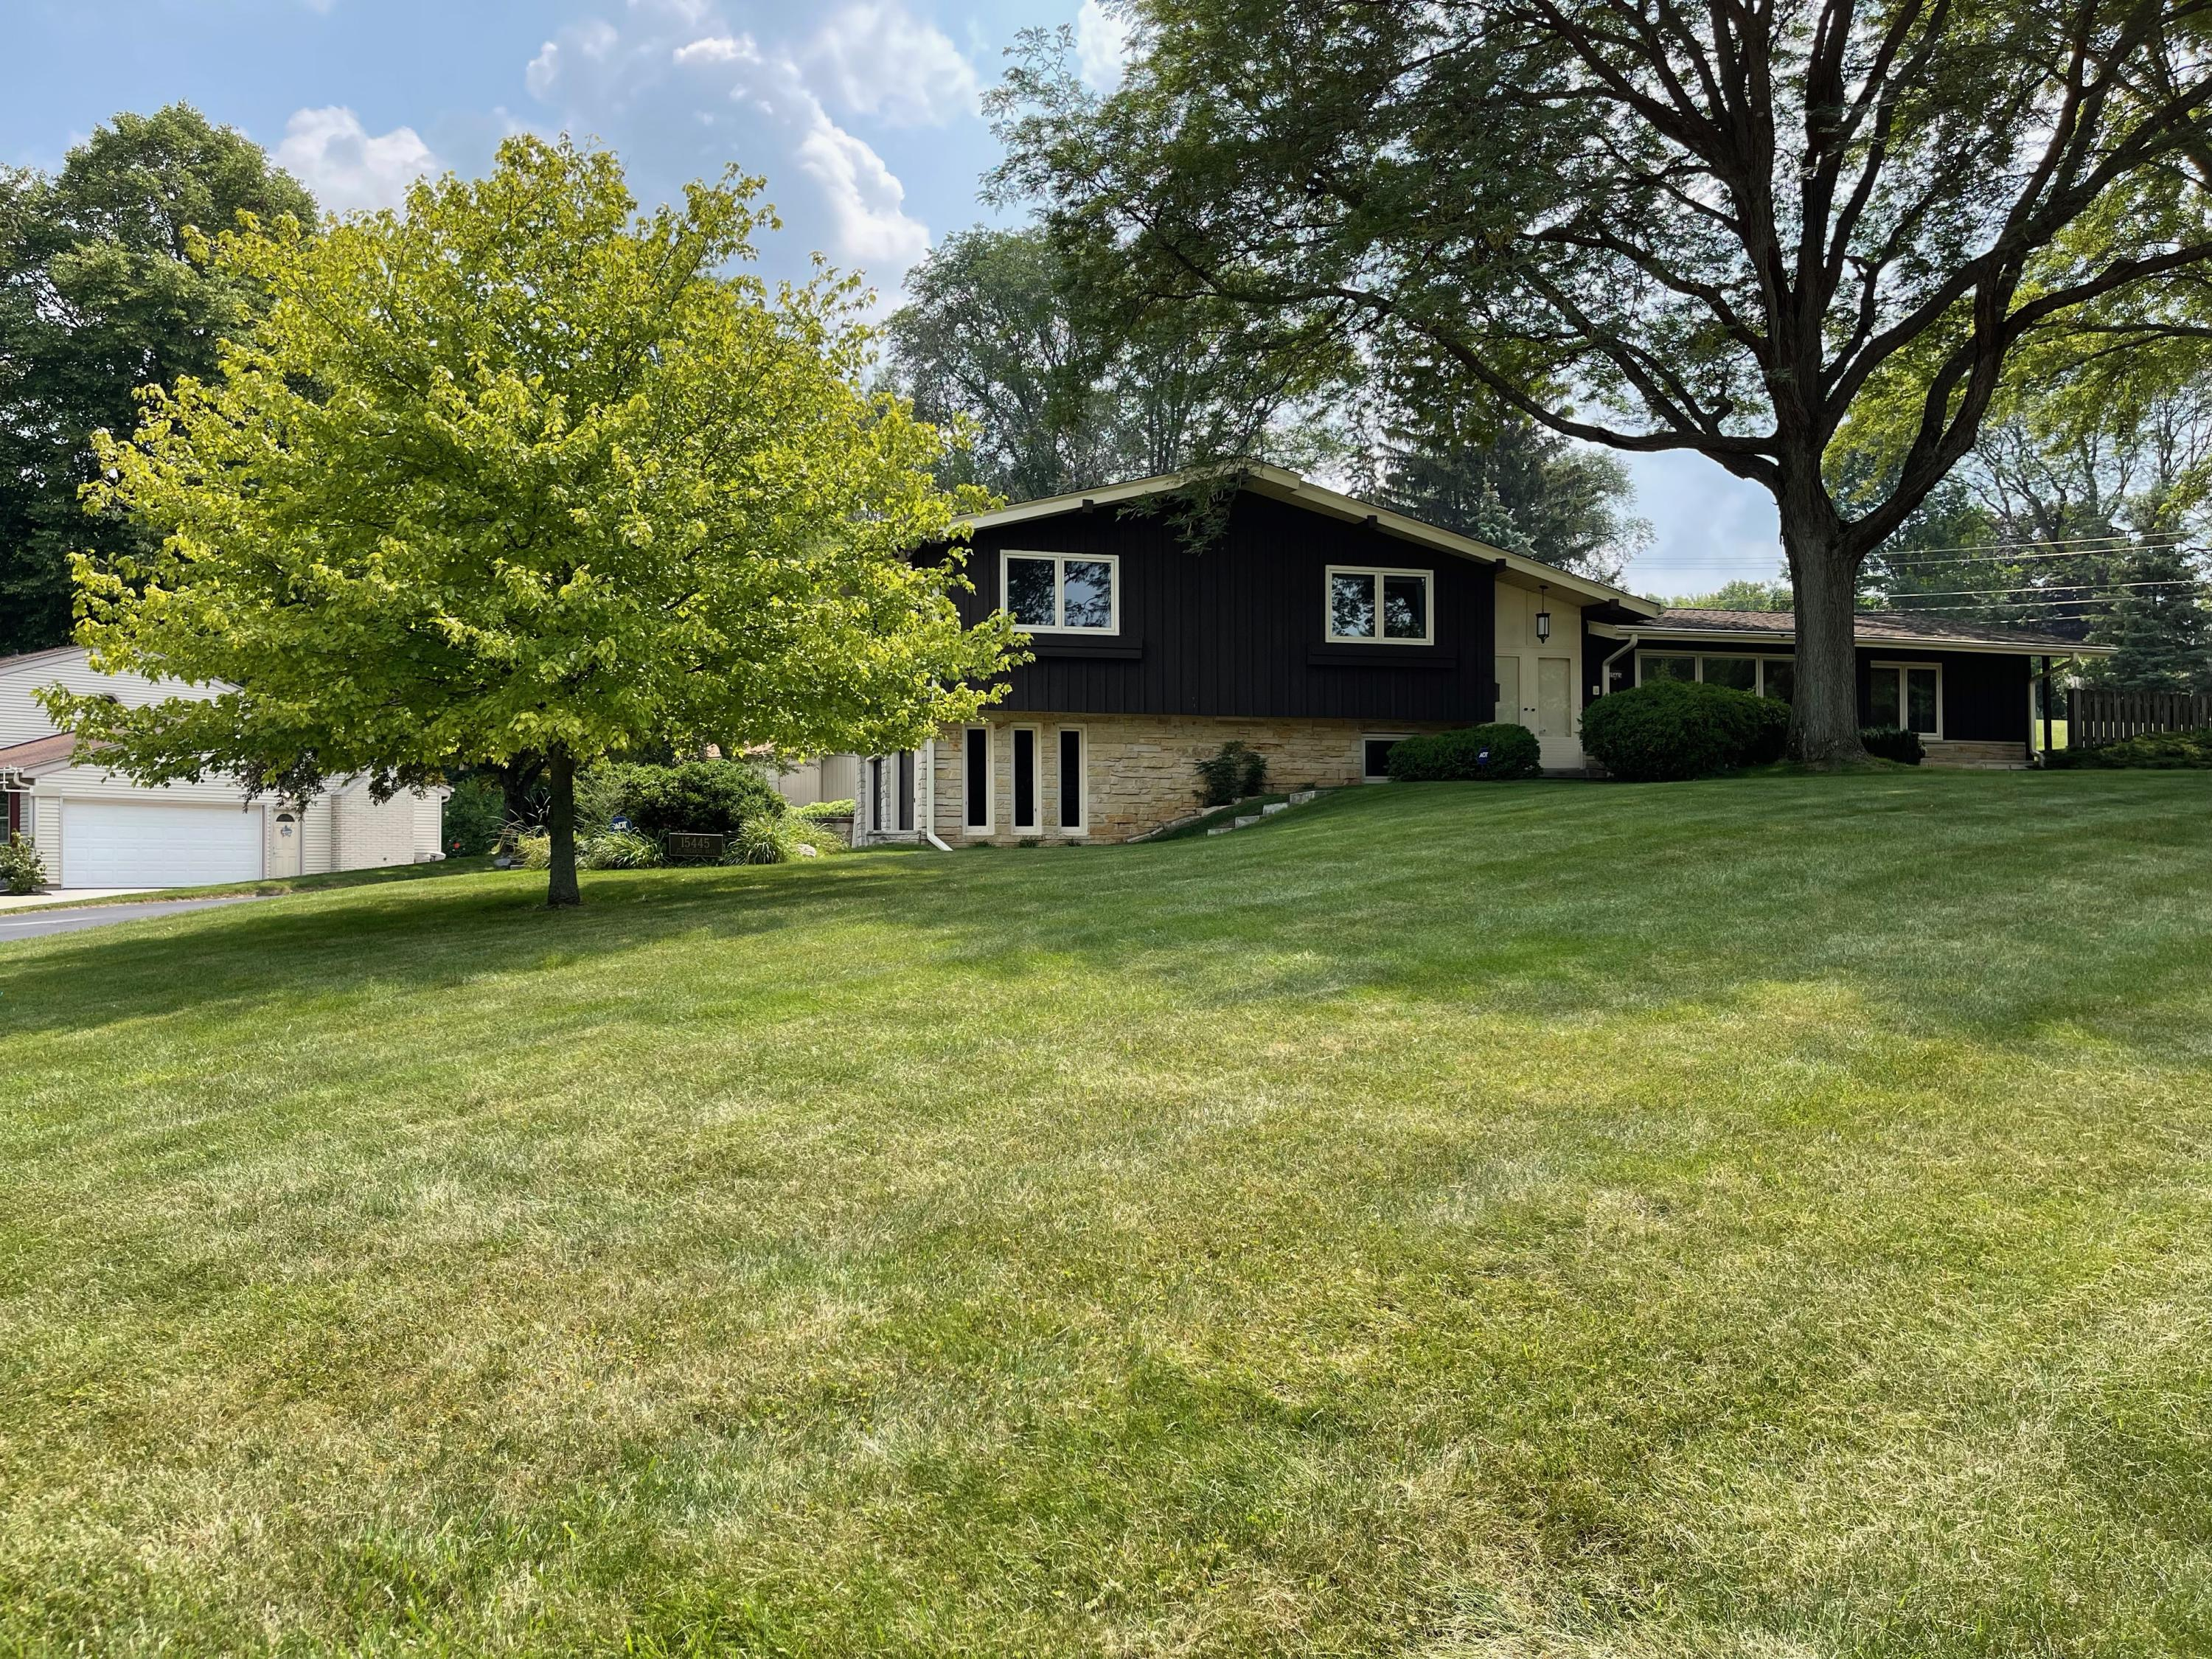 15445 St Therese Blvd, Brookfield, Wisconsin 53005, 3 Bedrooms Bedrooms, 7 Rooms Rooms,2 BathroomsBathrooms,Single-Family,For Sale,St Therese Blvd,1754328